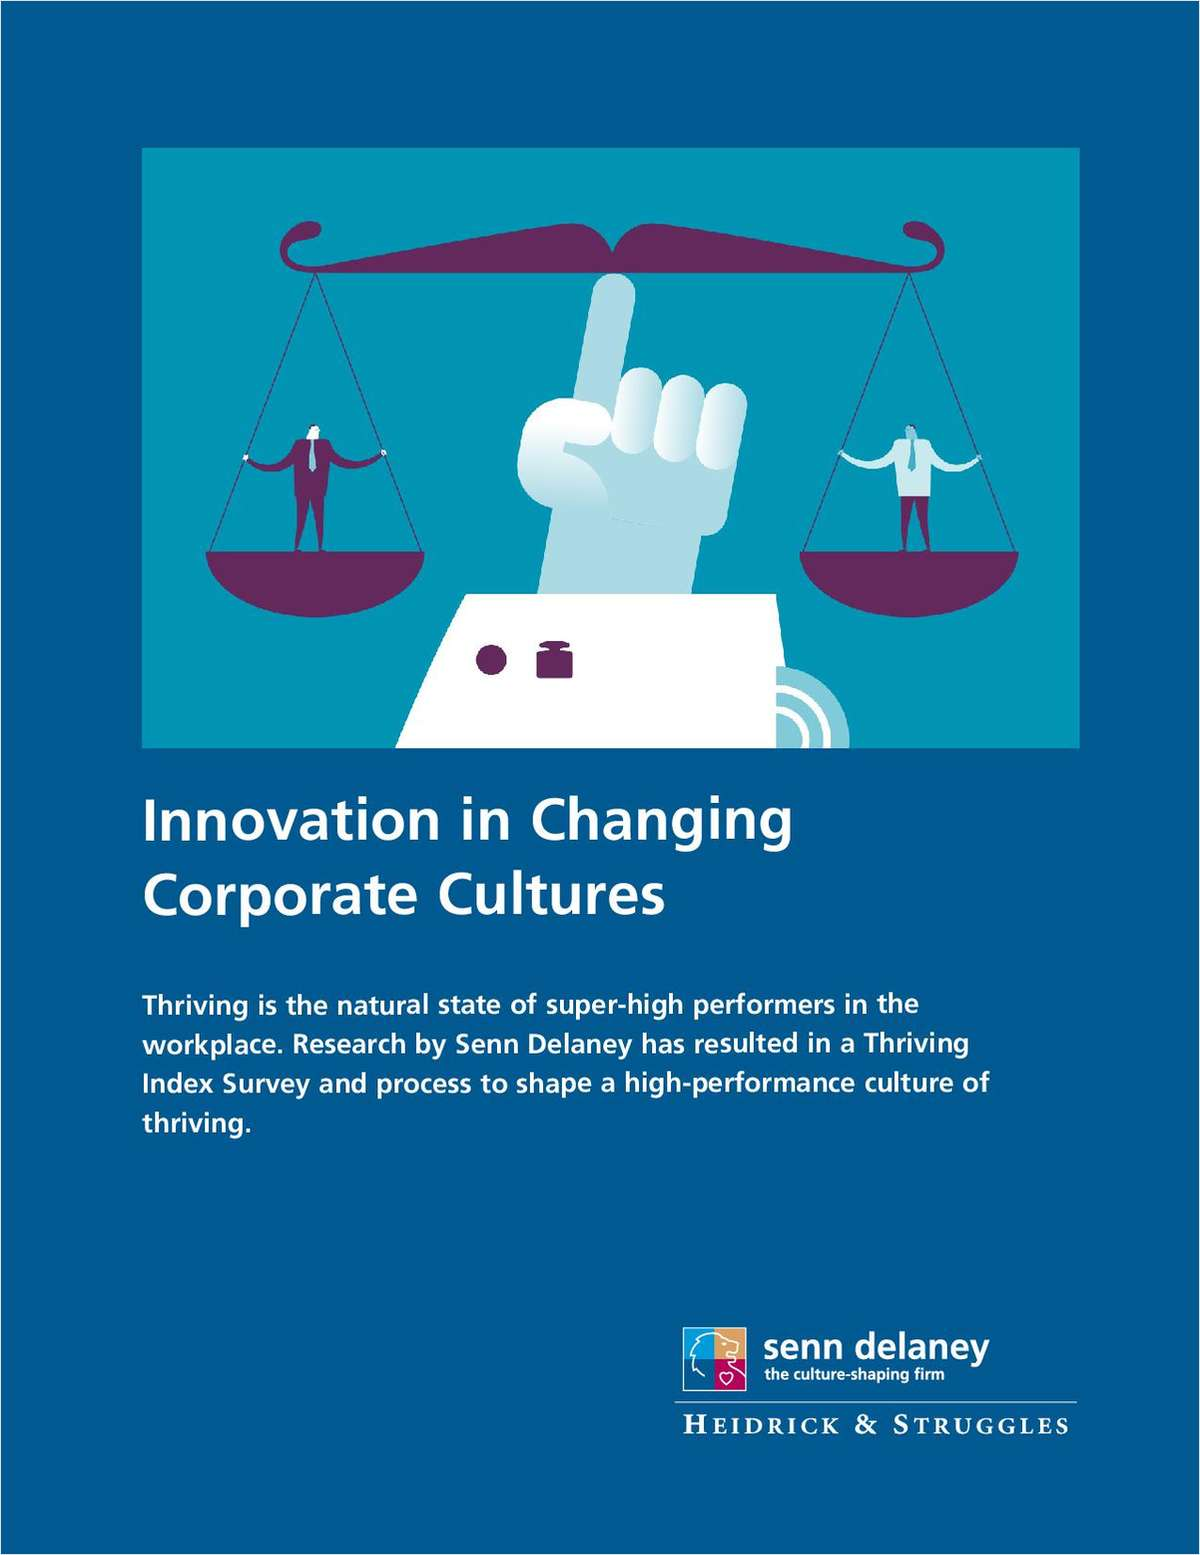 Innovation in Changing Corporate Cultures